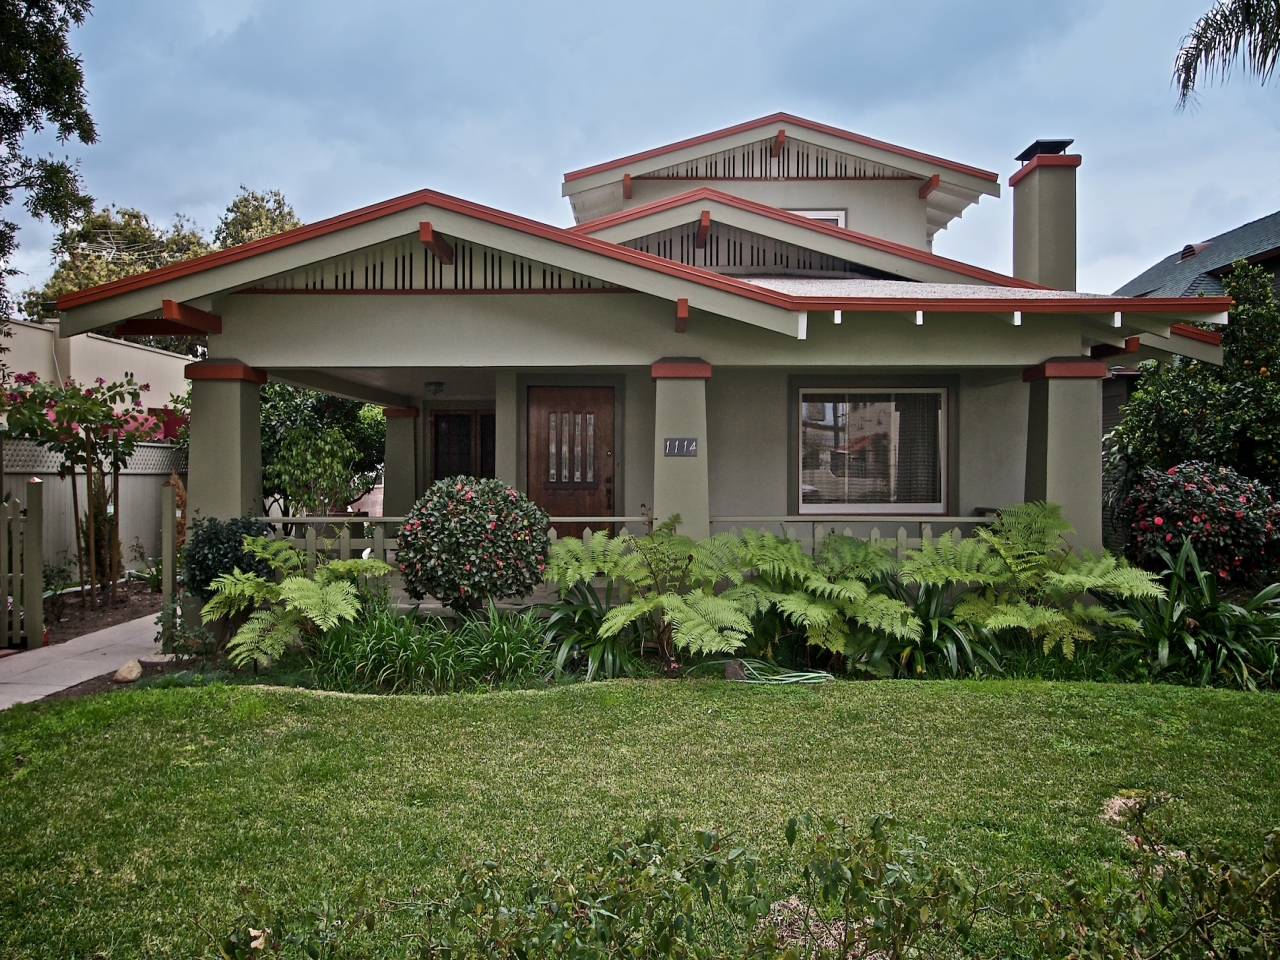 California bungalow style bungalow style architecture for Bungalow style